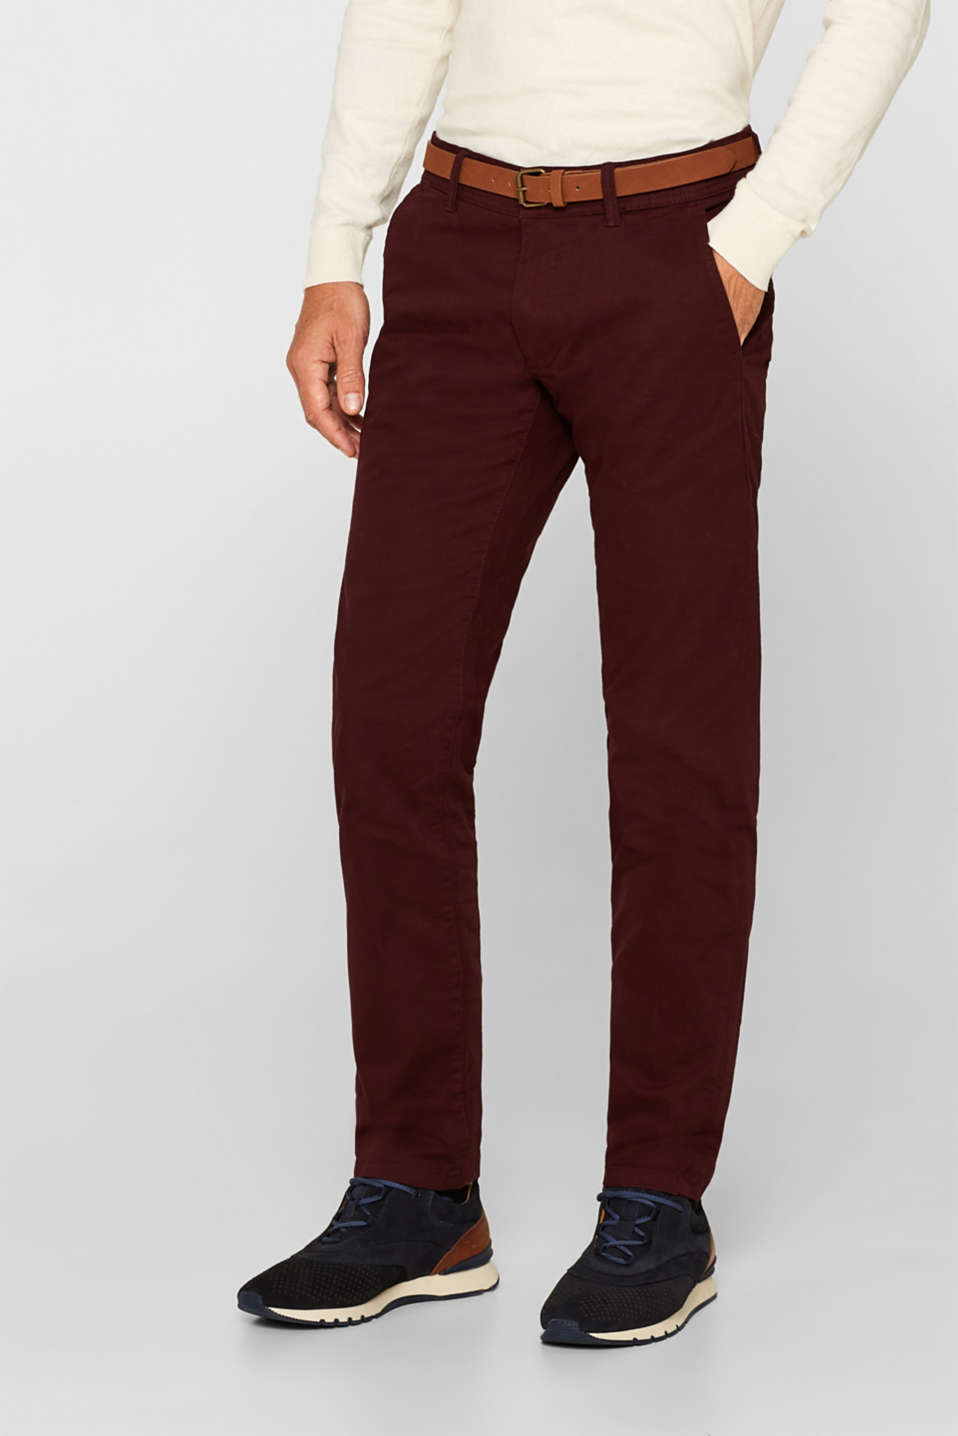 Esprit - Stretch trousers with a belt